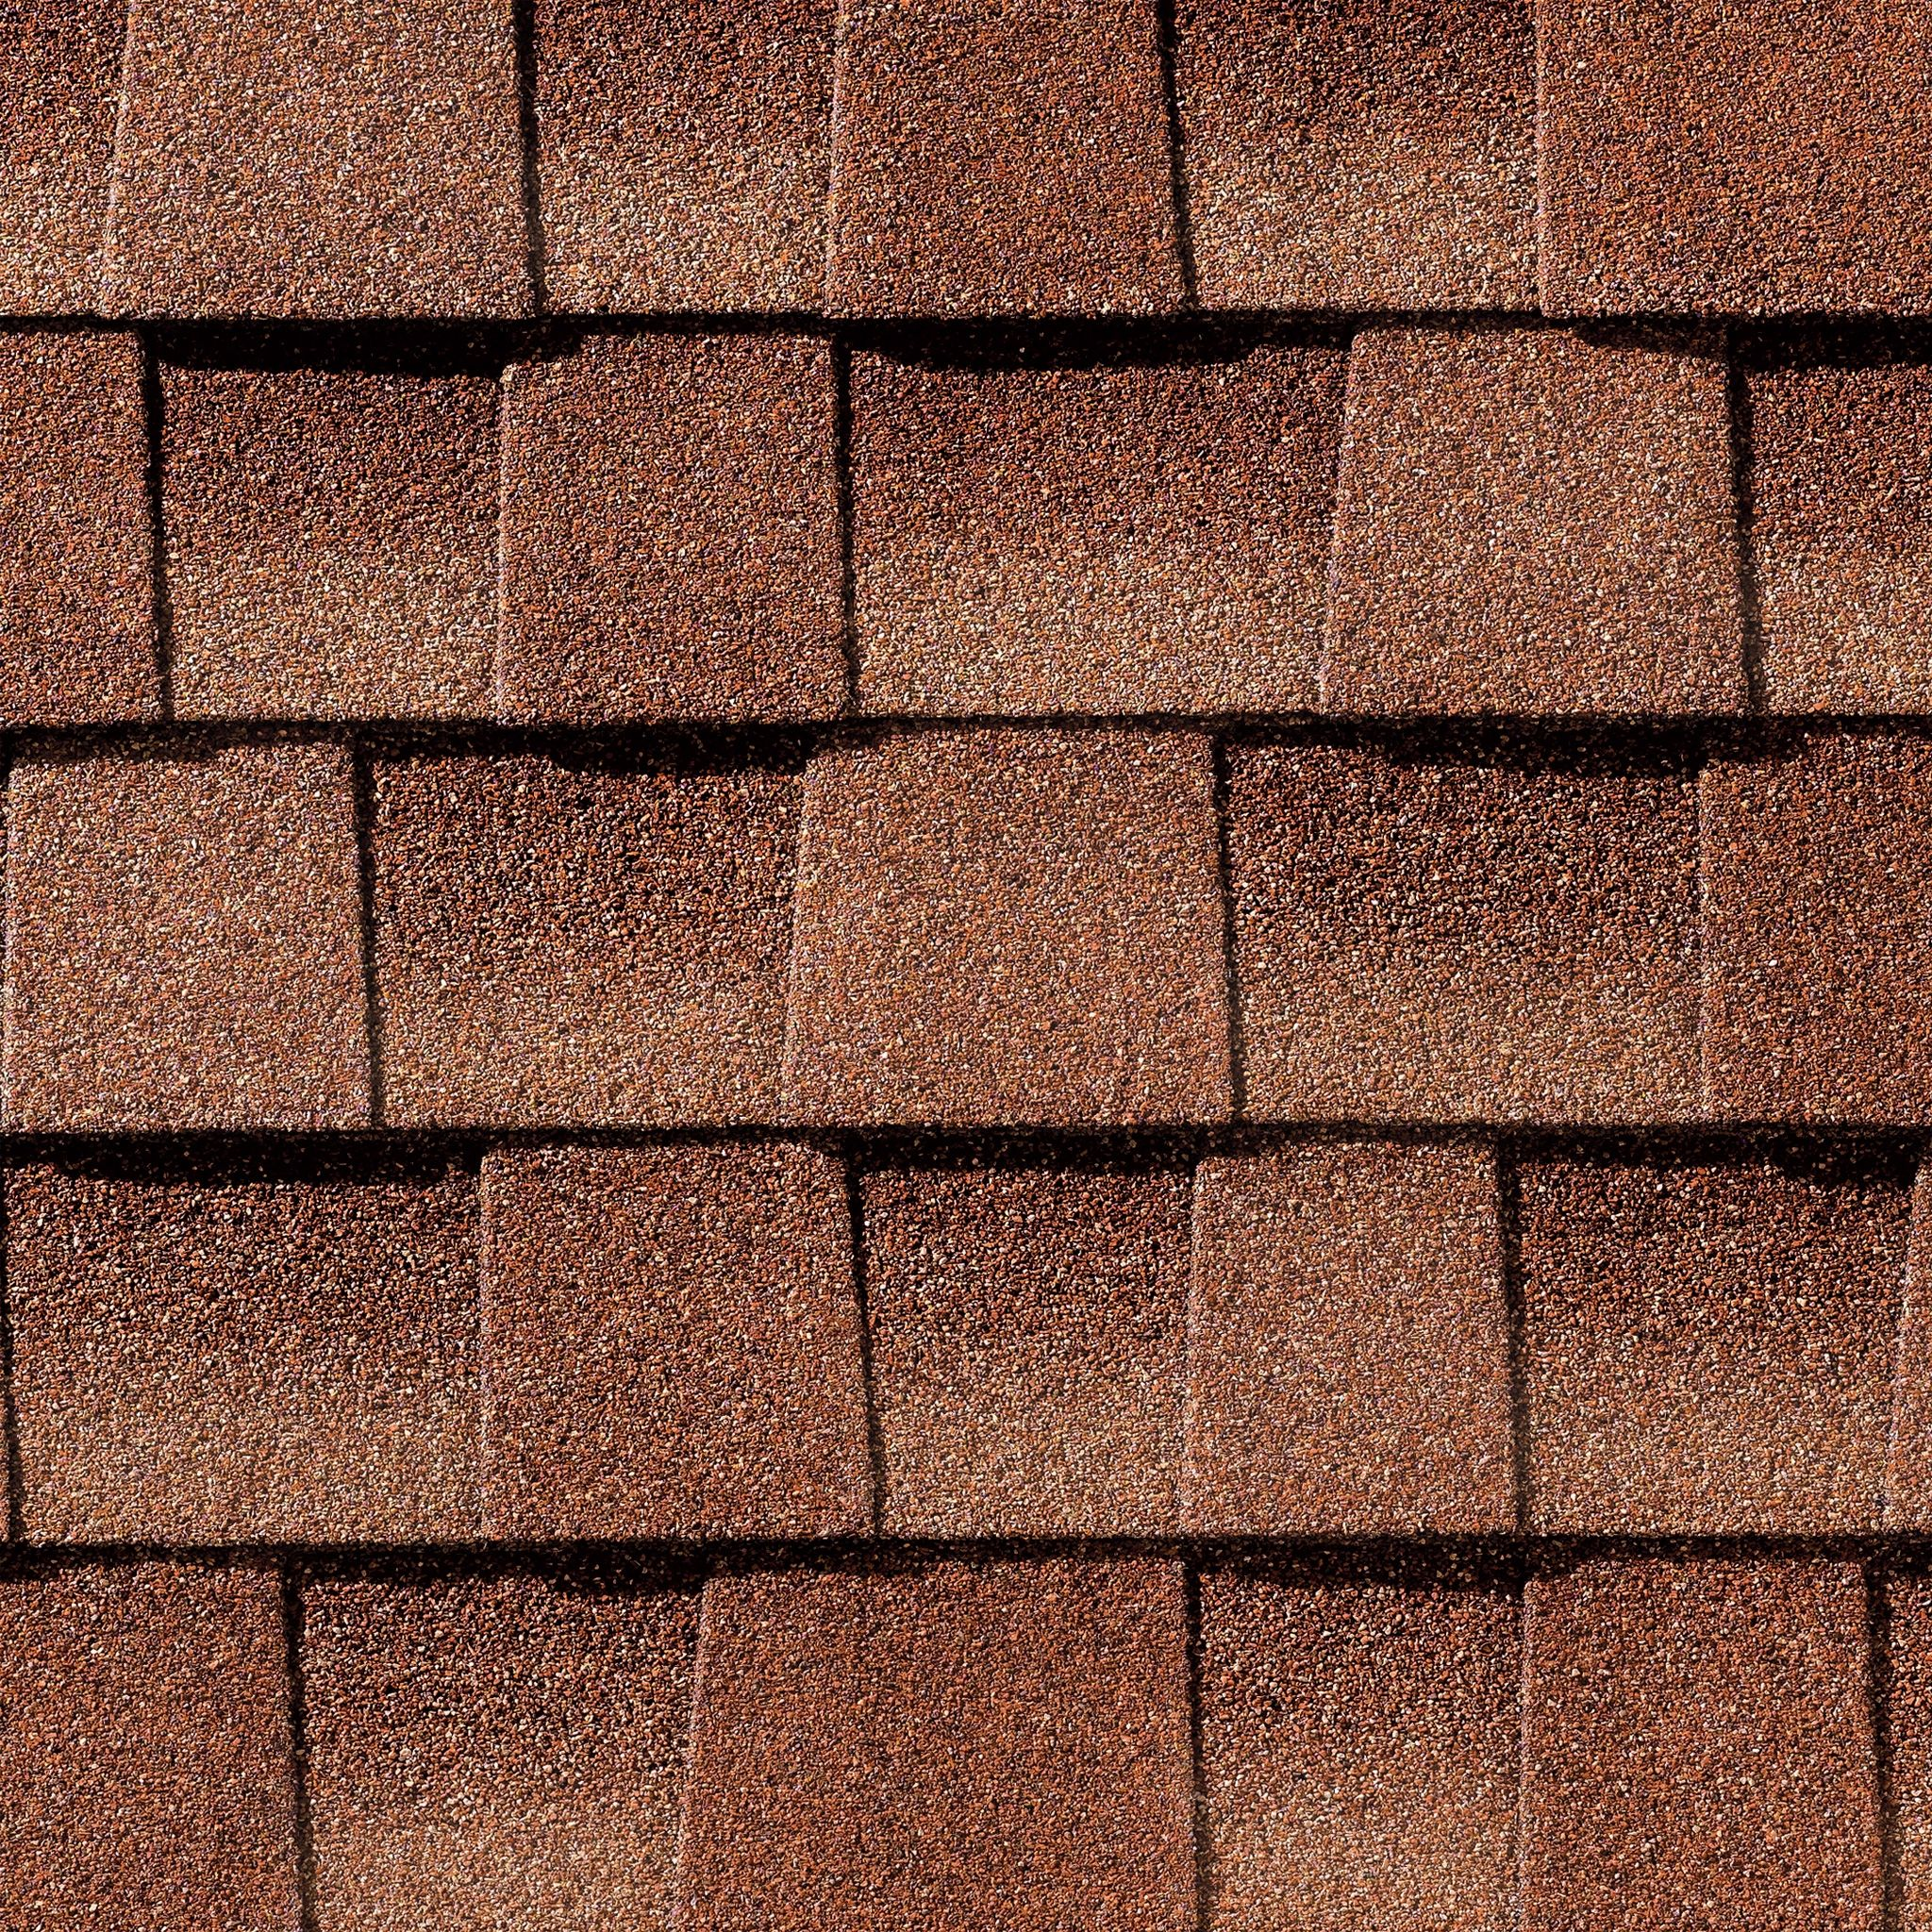 Best Timberline Hd Sunset Brick Roof Shingles Roofing 400 x 300